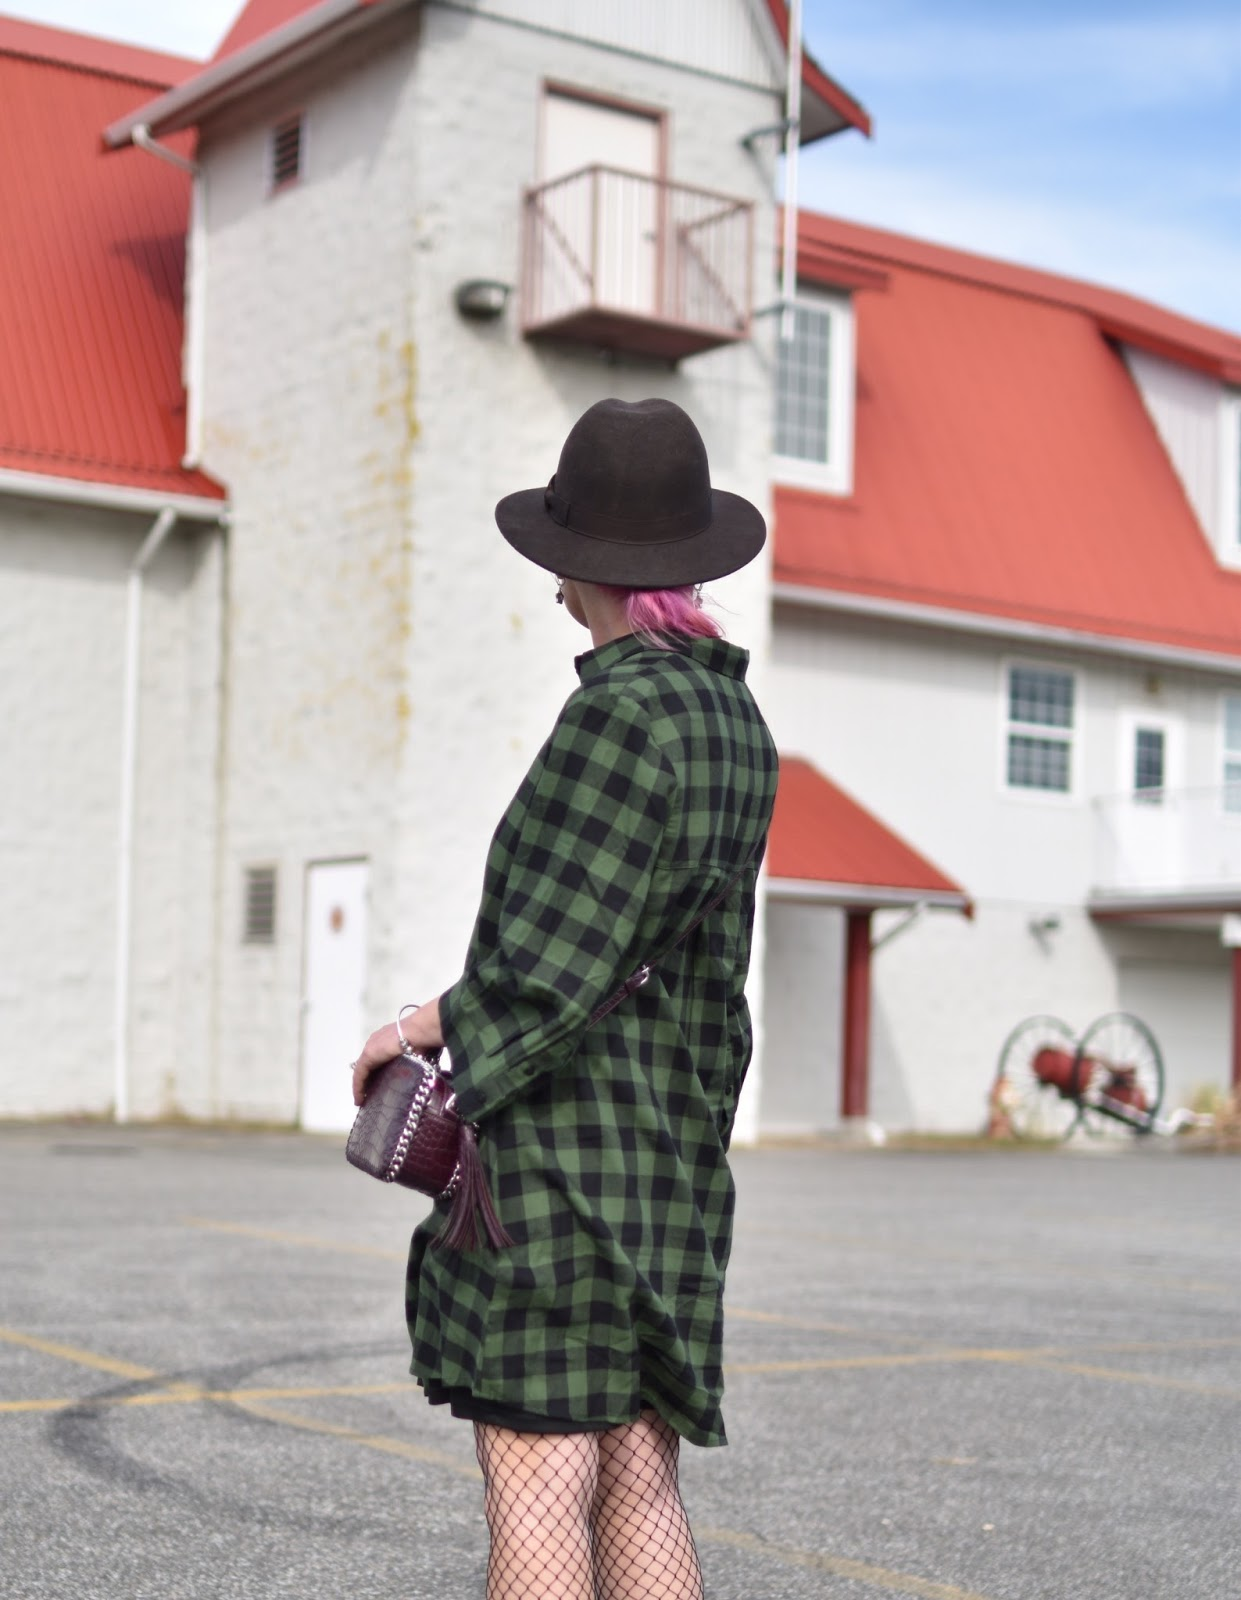 Outfit inspiration - plaid flannel shirtdress, fishnet tights, felt fedora, maroon cross-body bag